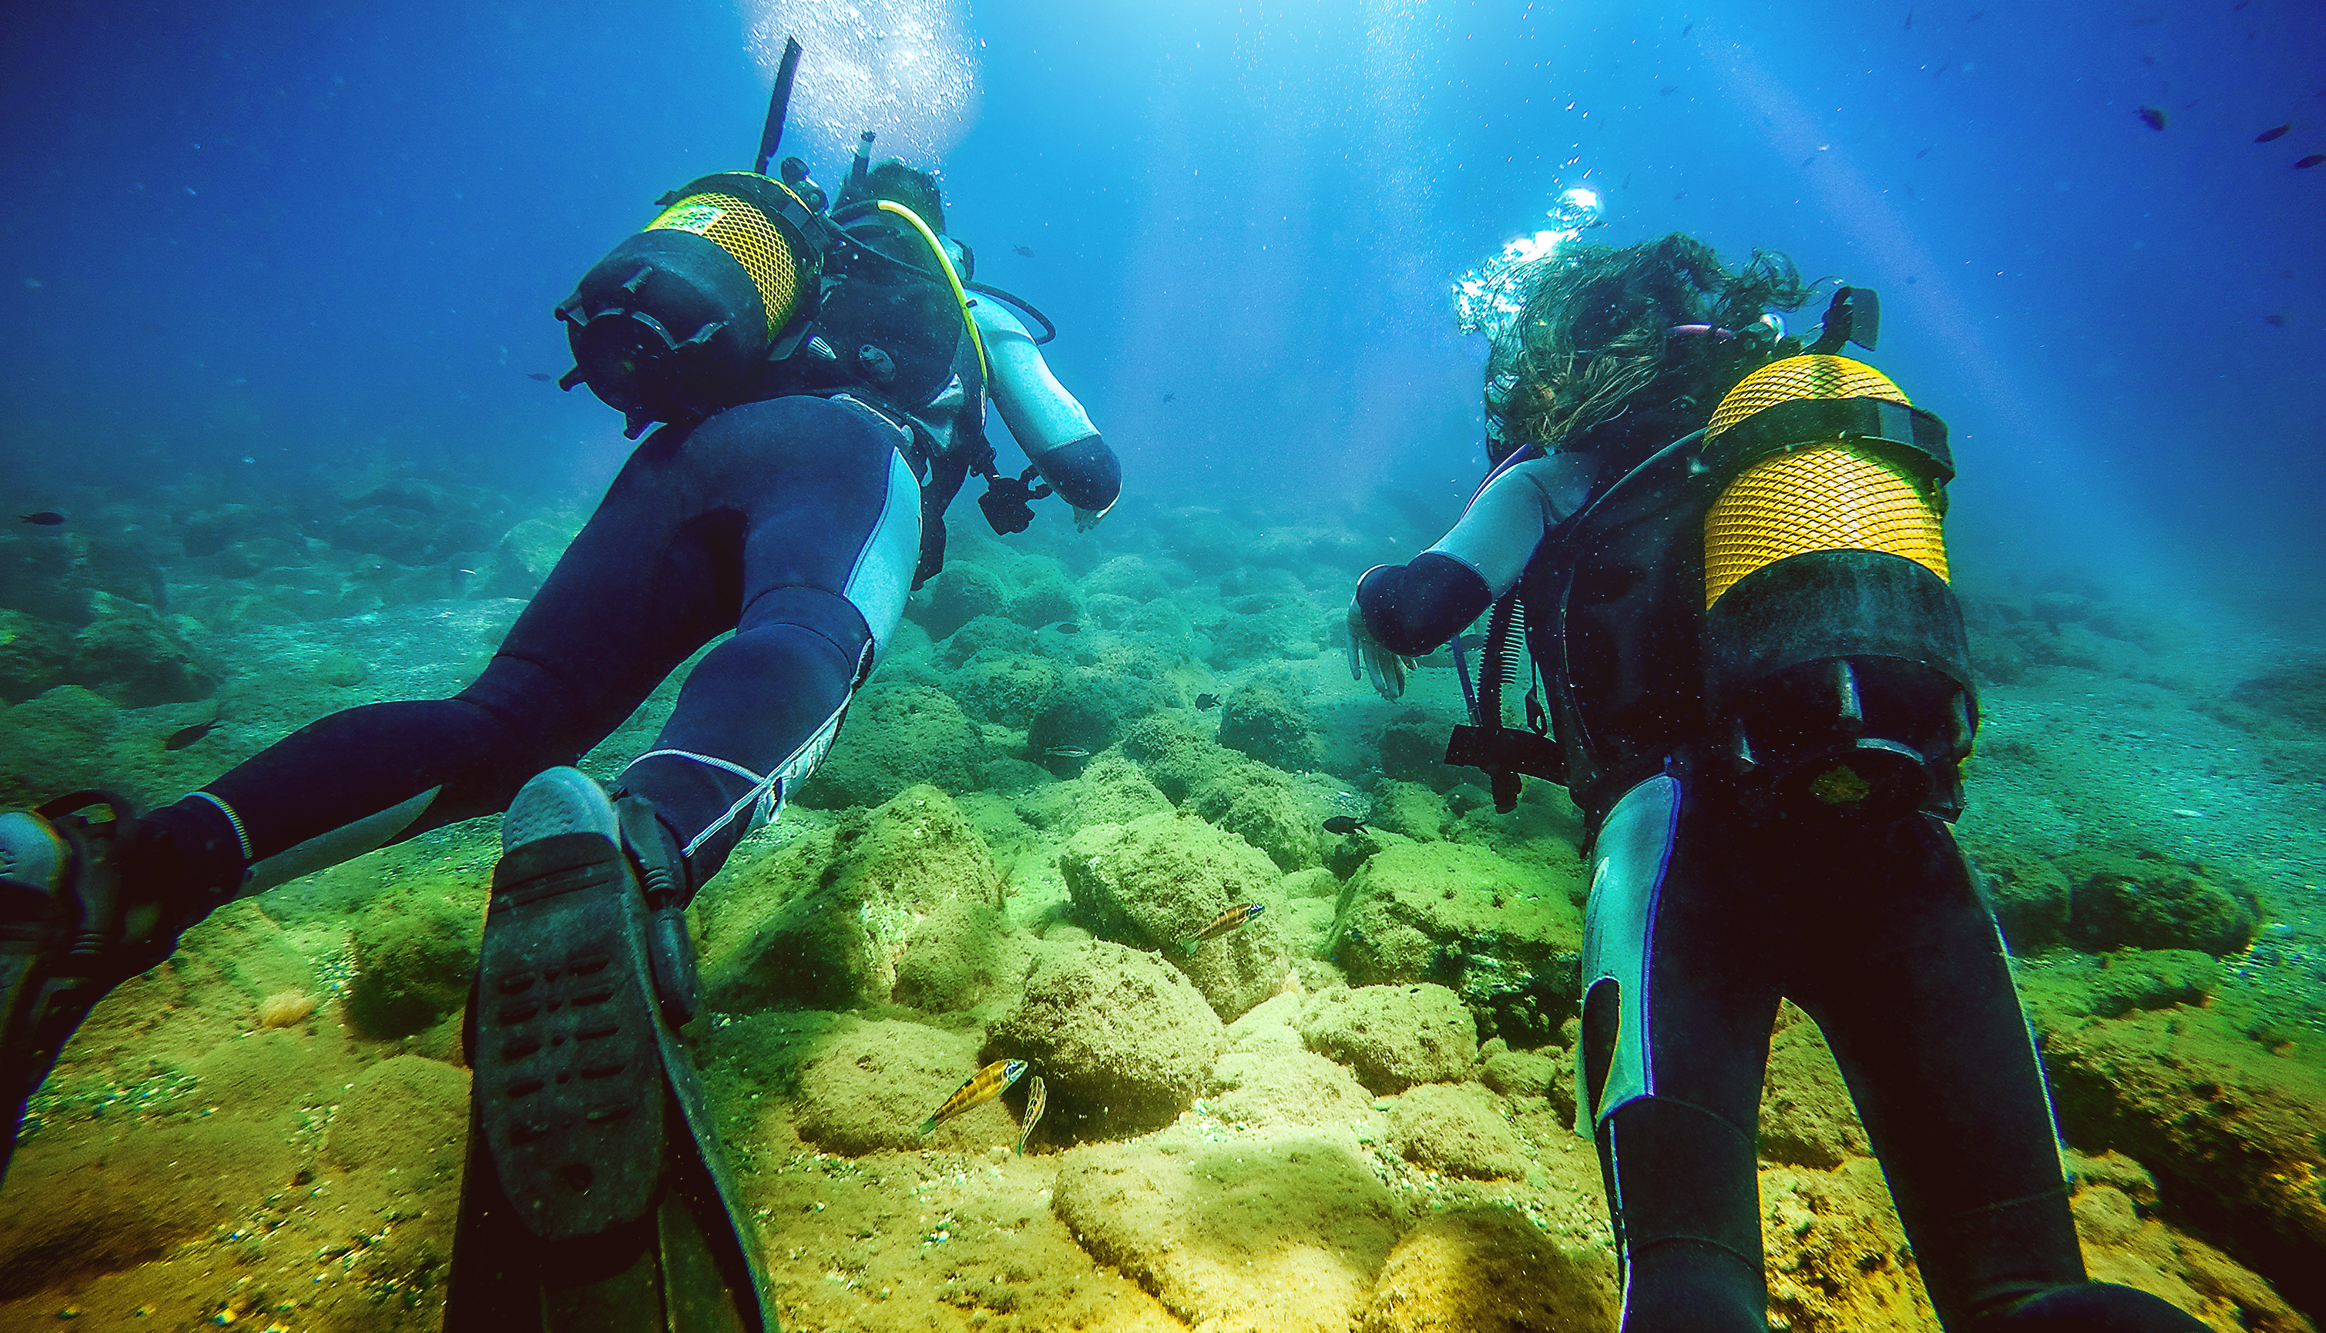 This stock photo displays two scuba divers swimming in the ocean.